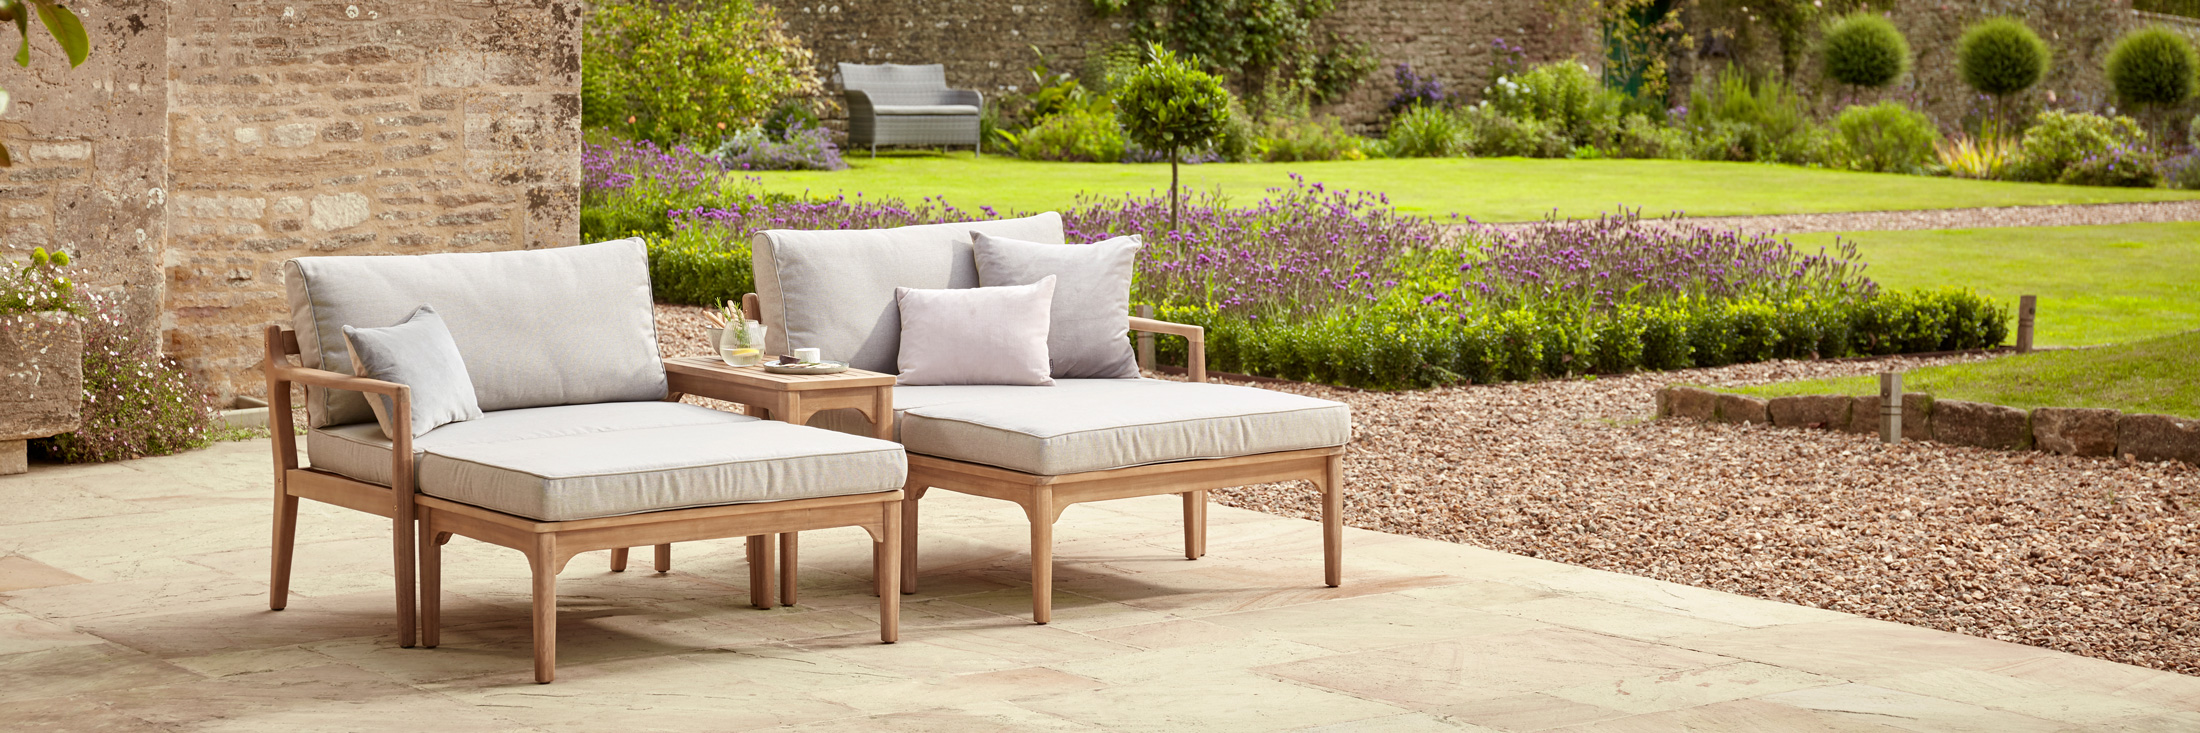 coxandcox.co.uk - Outdoor Furniture starting at just £12.50